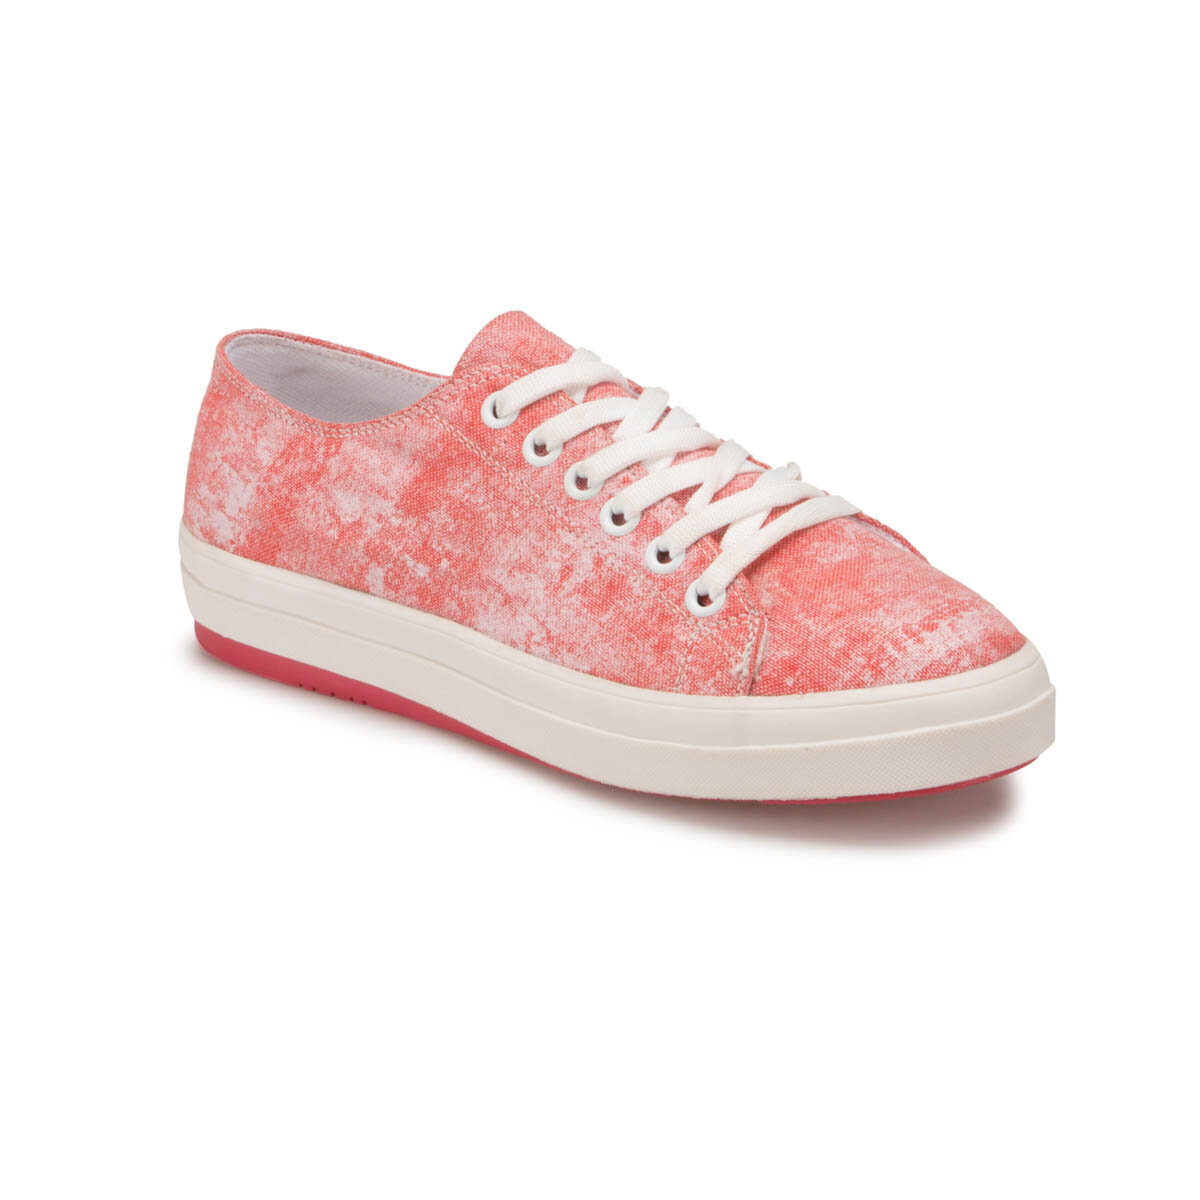 FLO U2604 Red Women 'S Sneaker Shoes Art Bella